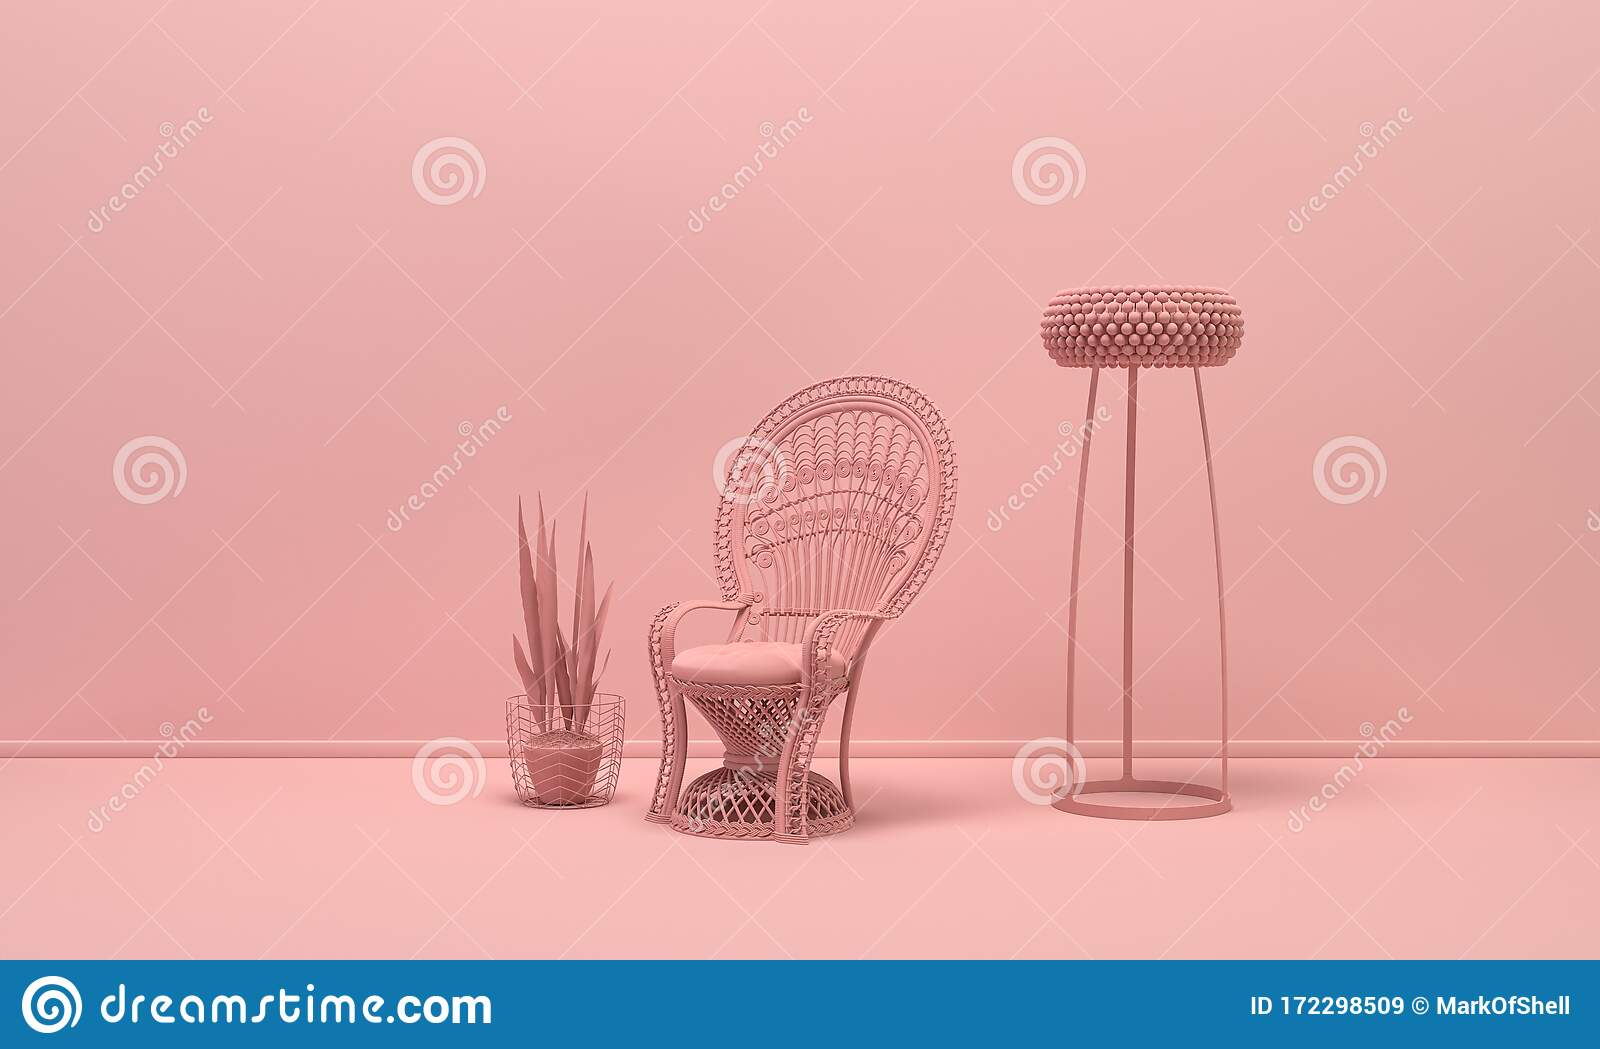 Interior Of The Room In Plain Monochrome Light Pink Color With Single Victorian Chair Floor Lamp And Decorative Vase And Plant Stock Illustration Illustration Of Lamp Floor 172298509